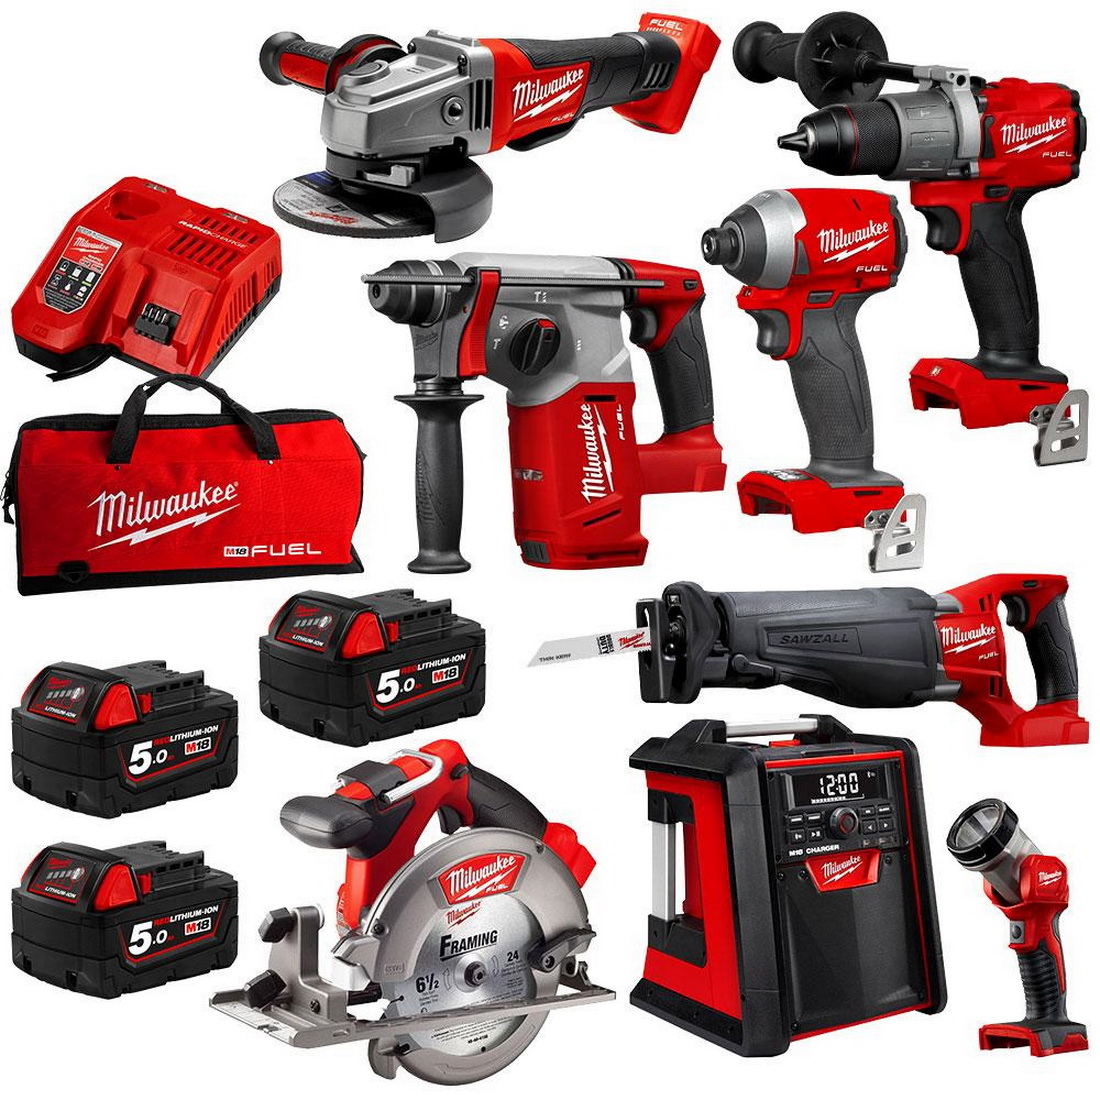 M18 FUEL Cordless Combo Kit 5.0Ah 8 Piece